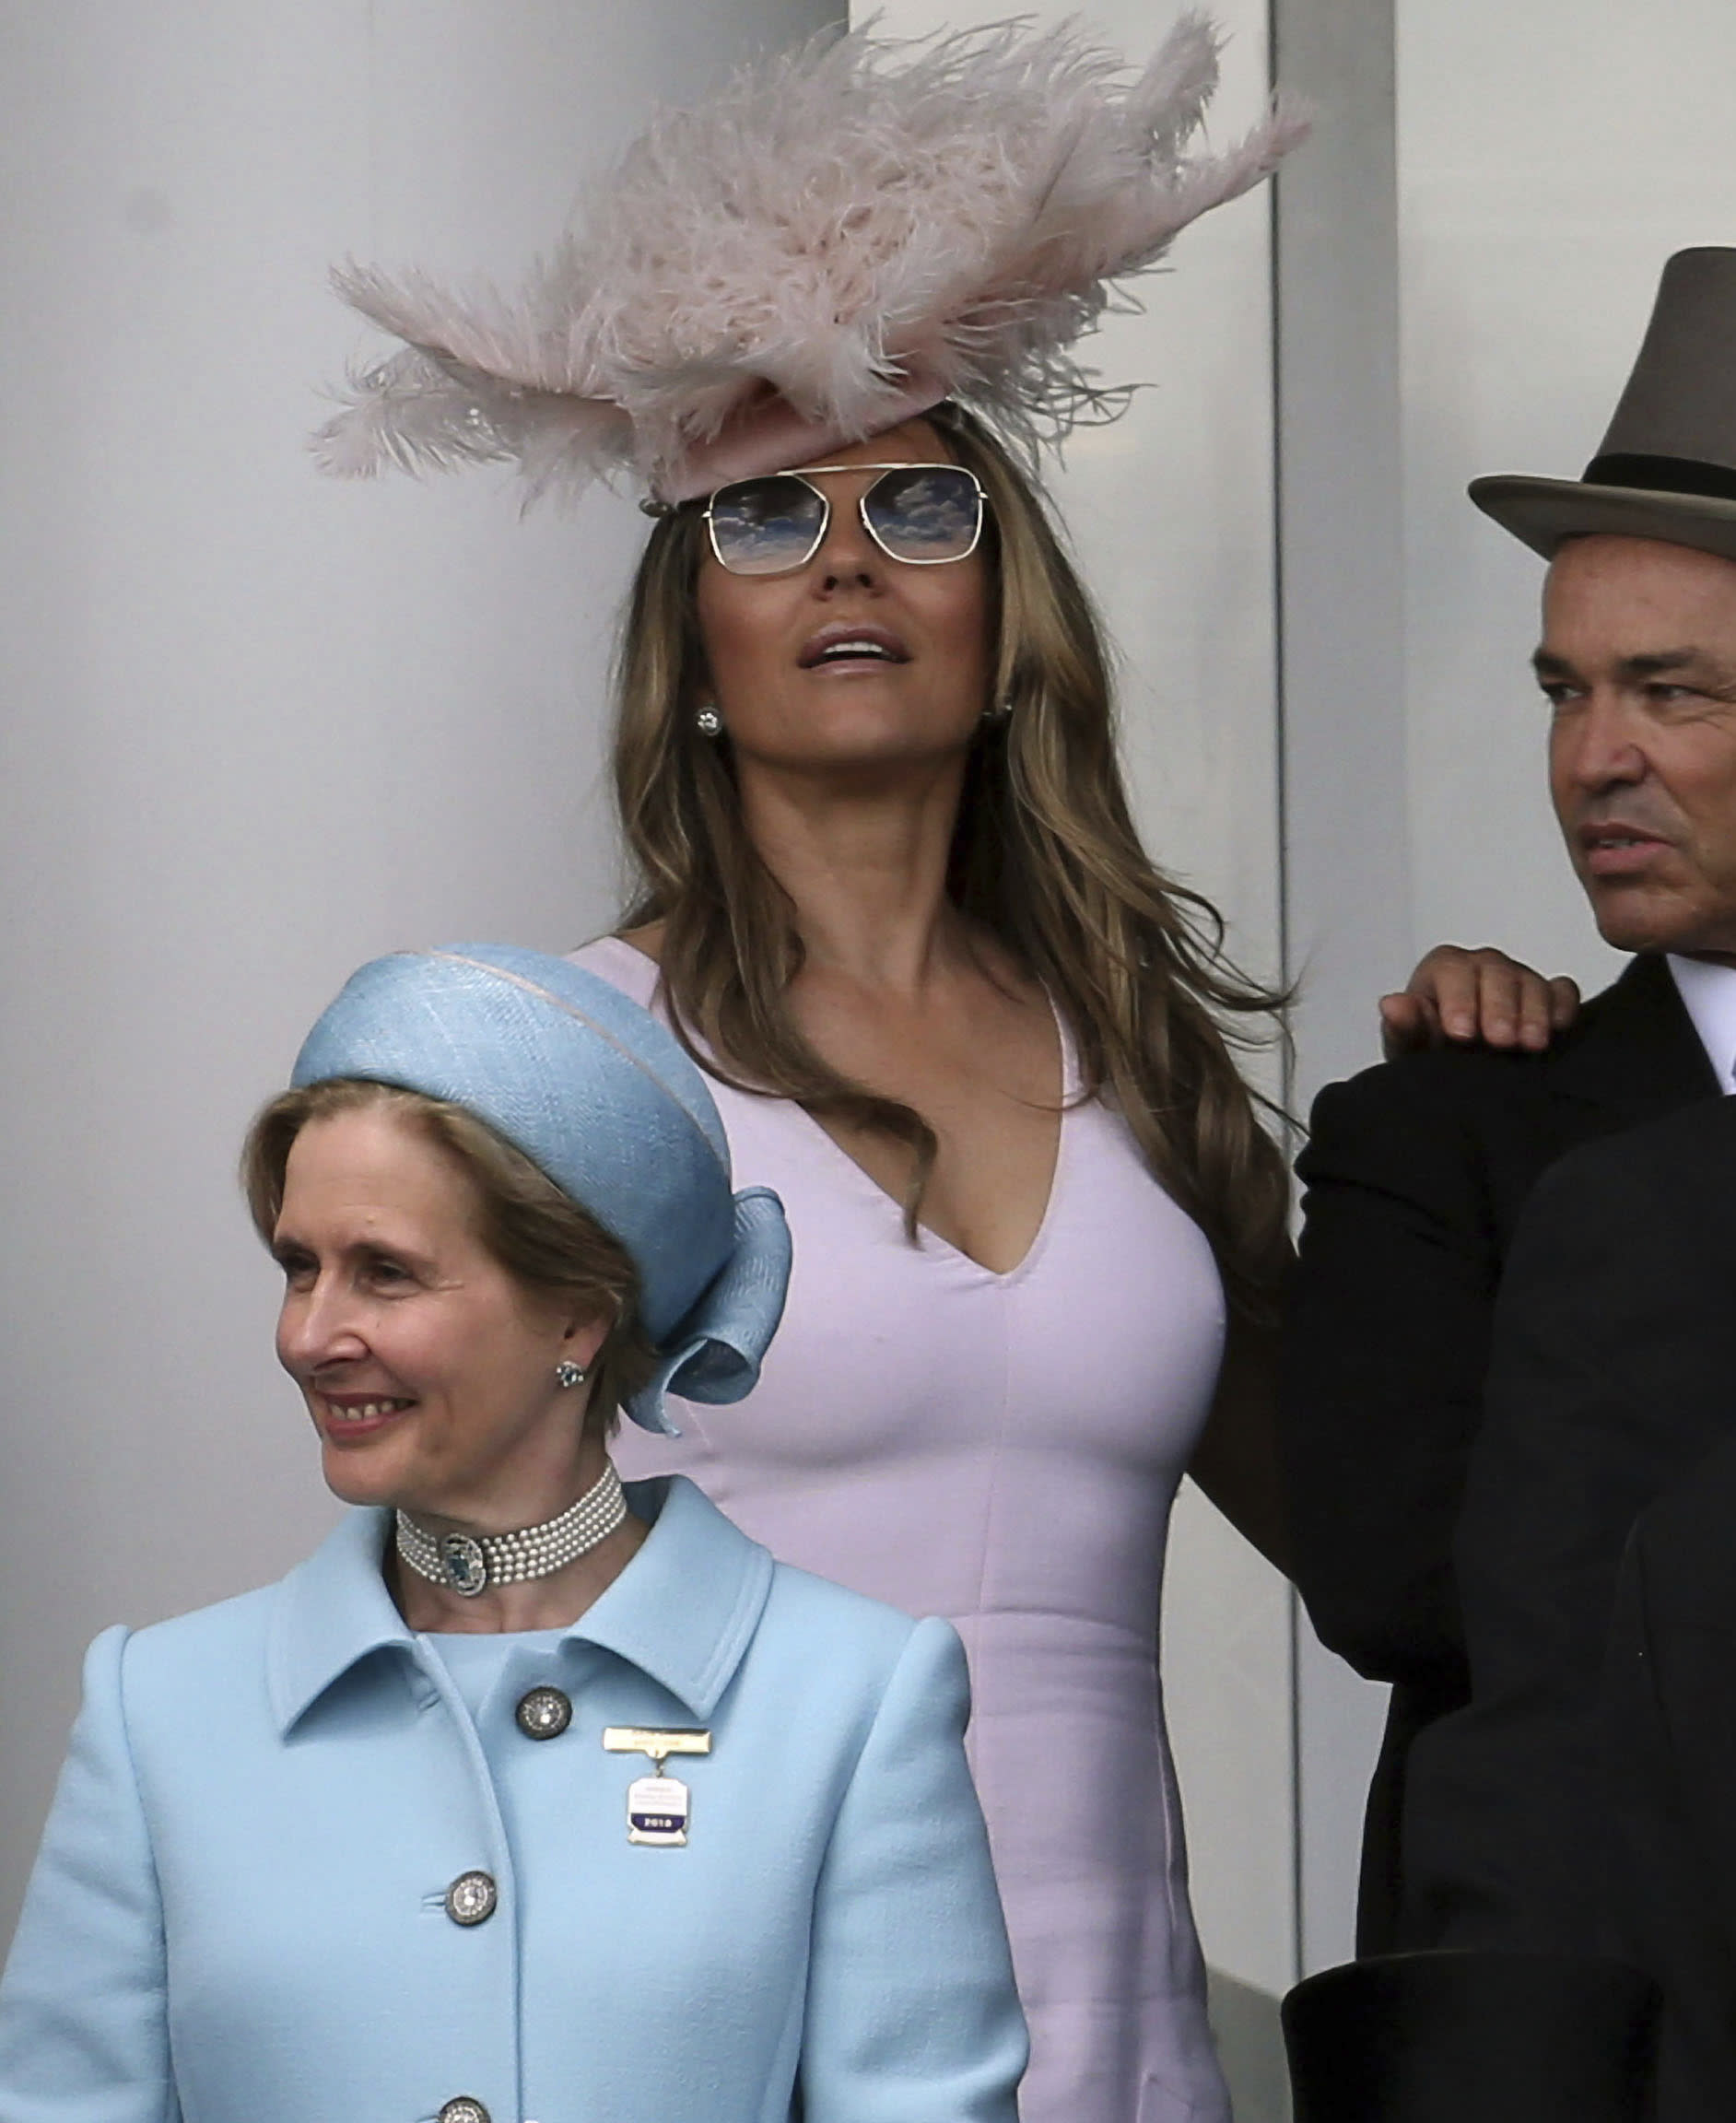 Photo by: zz/KGC-22/STAR MAX/IPx 2018 6/2/18 Elizabeth Hurley at the Investec Epsom Derby at the Epsom Downs Racecourse. (Epsom, Surrey, England, UK)